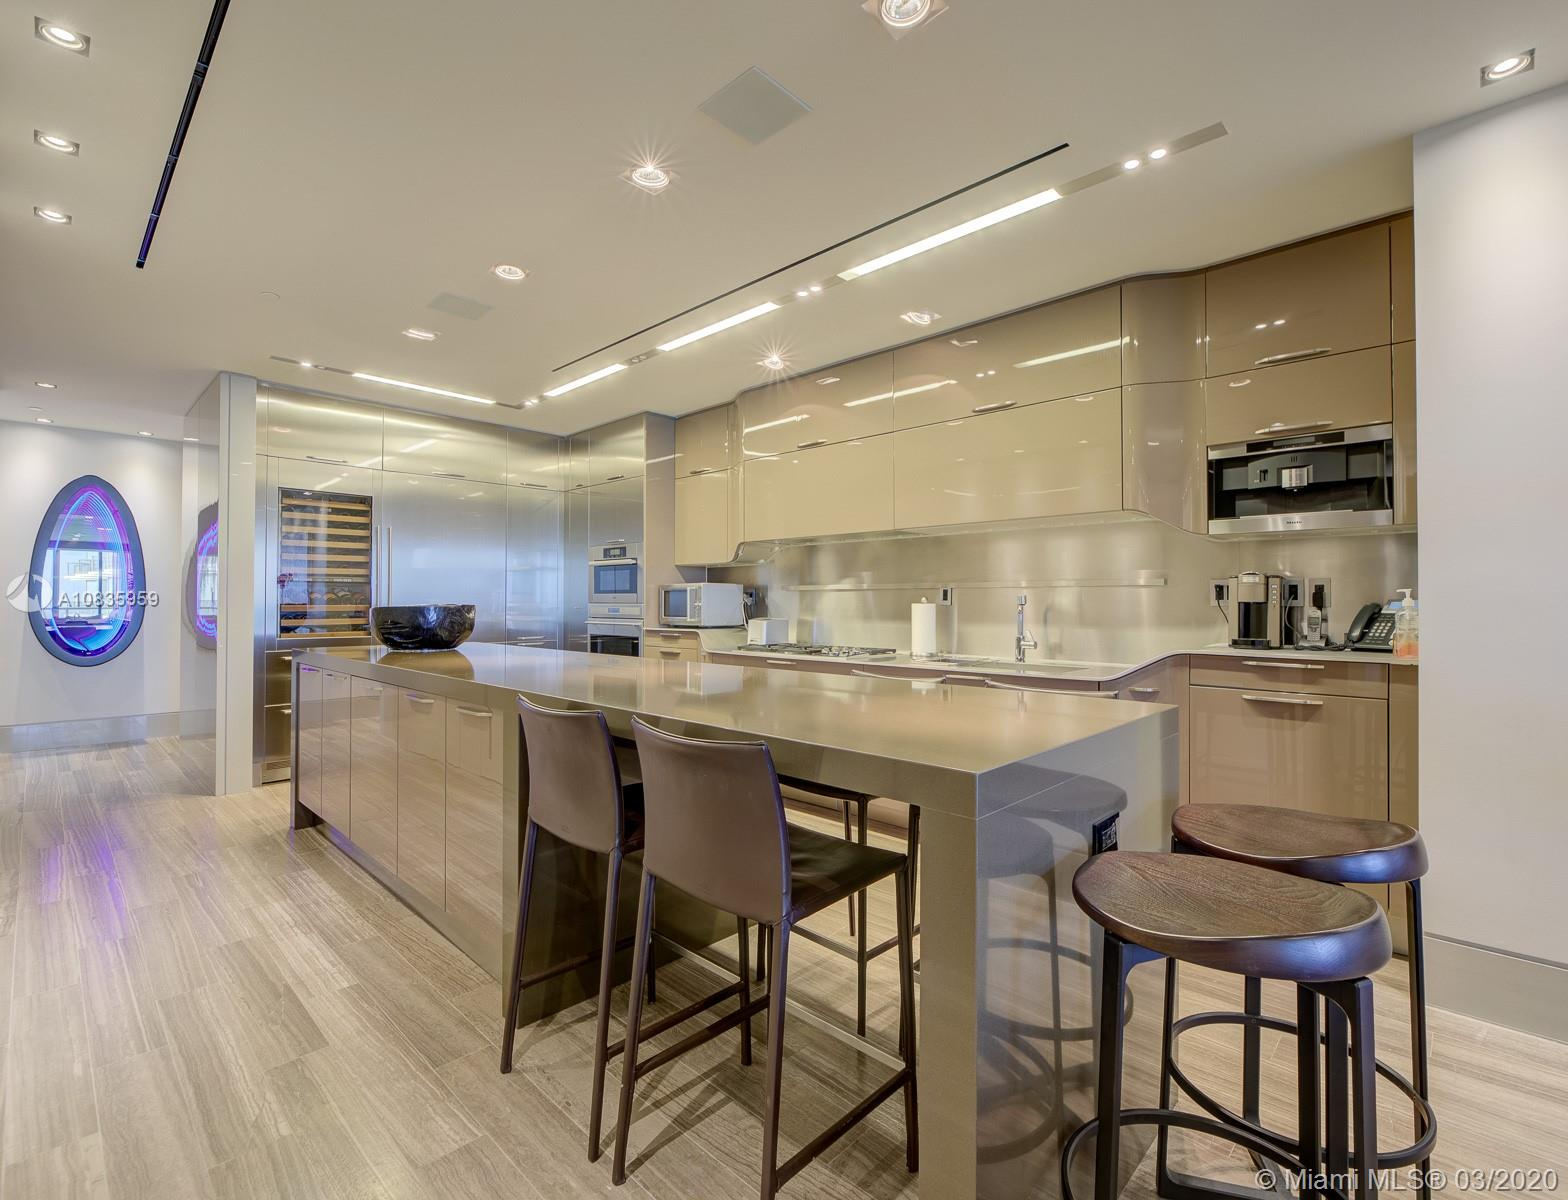 image #1 of property, Bal Harbour North South C, Unit 2204S